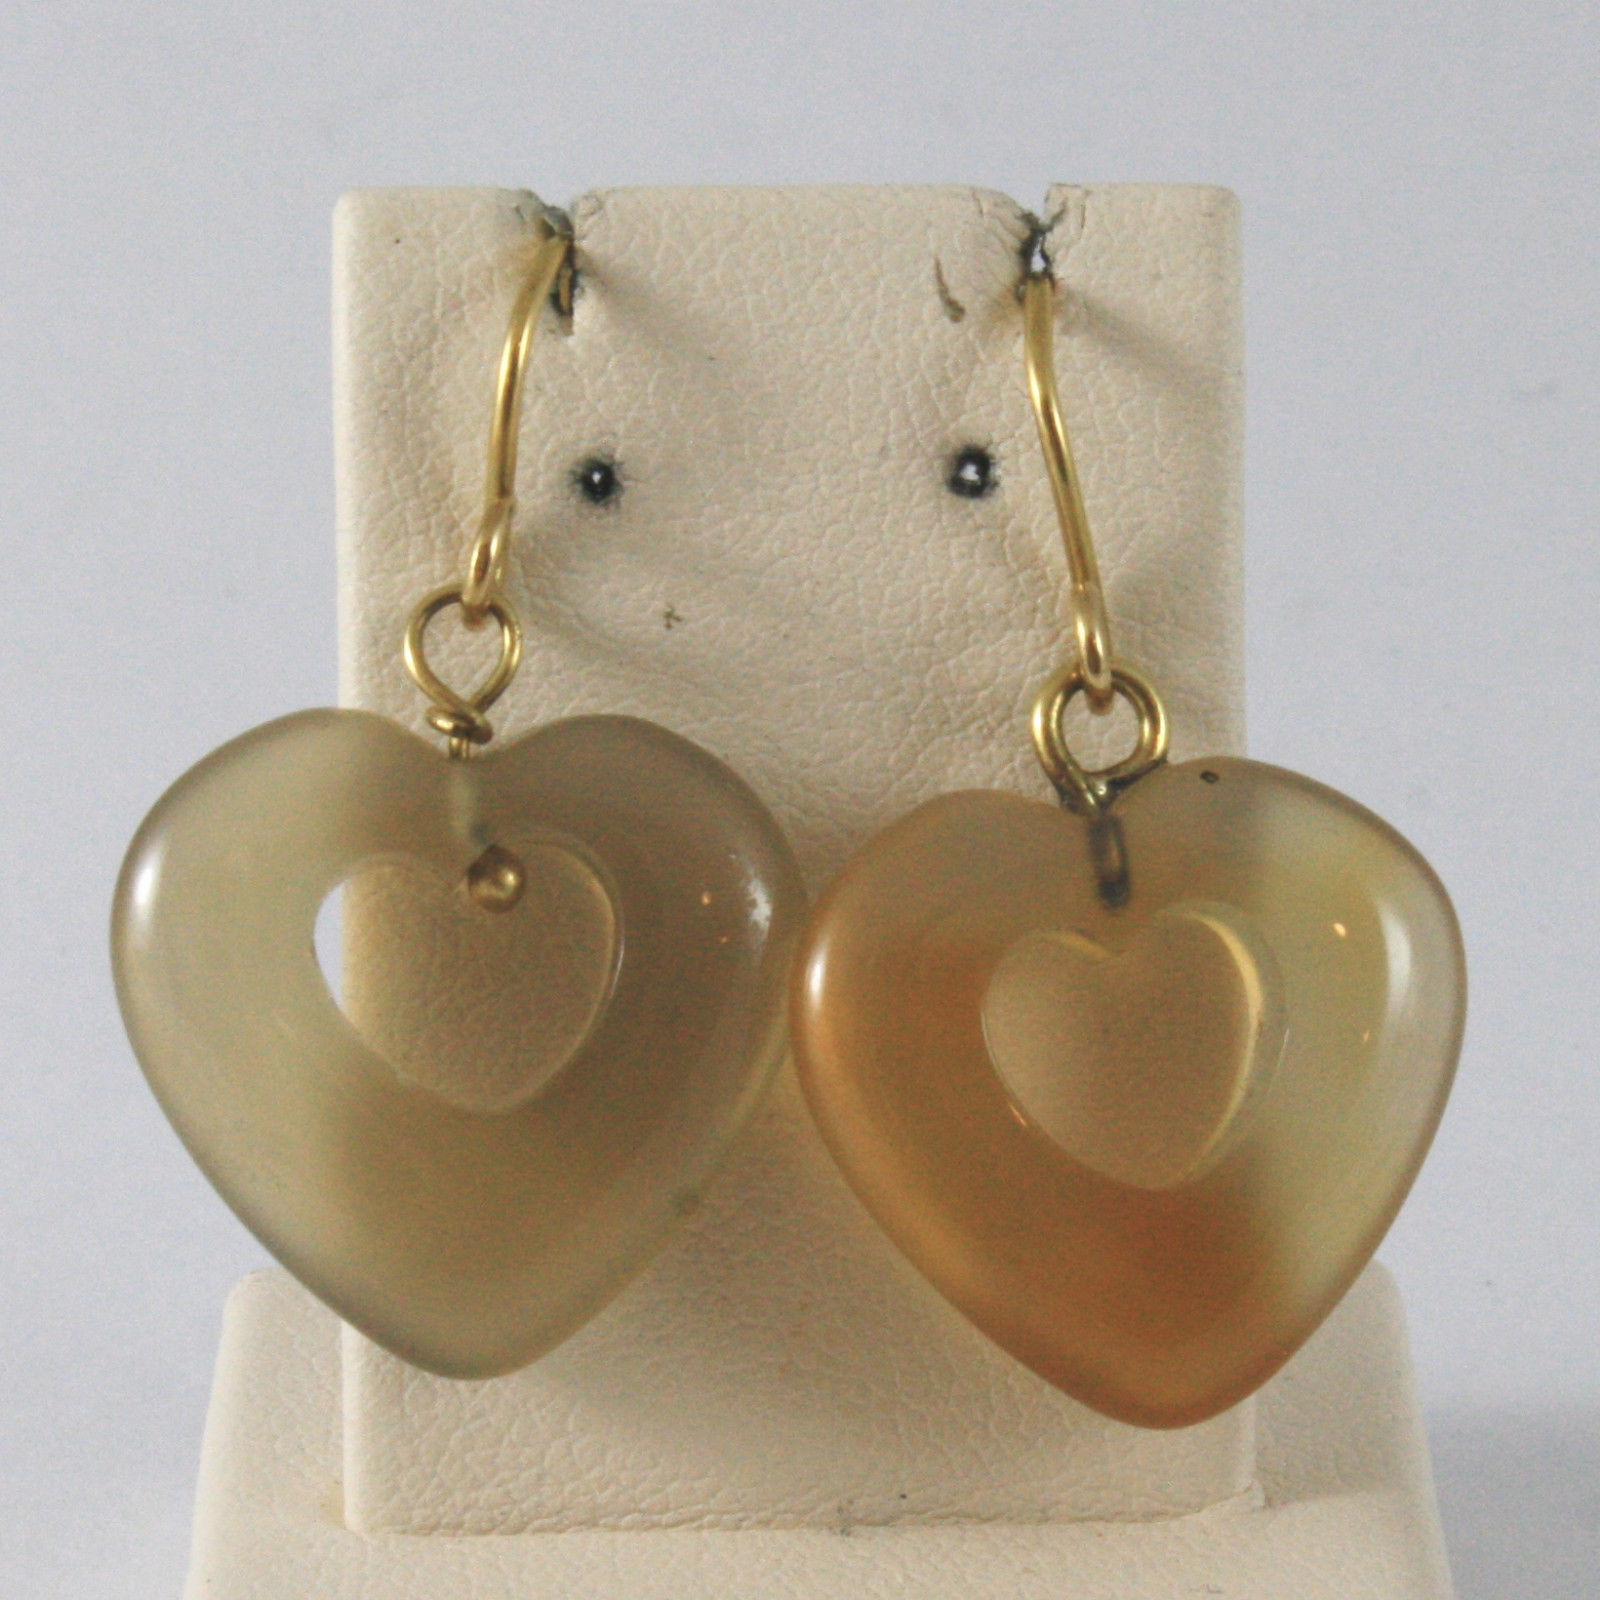 SOLID 18K YELLOW GOLD EARRINGS WITH HEARTS OF AGATE, MADE IN ITALY 18K